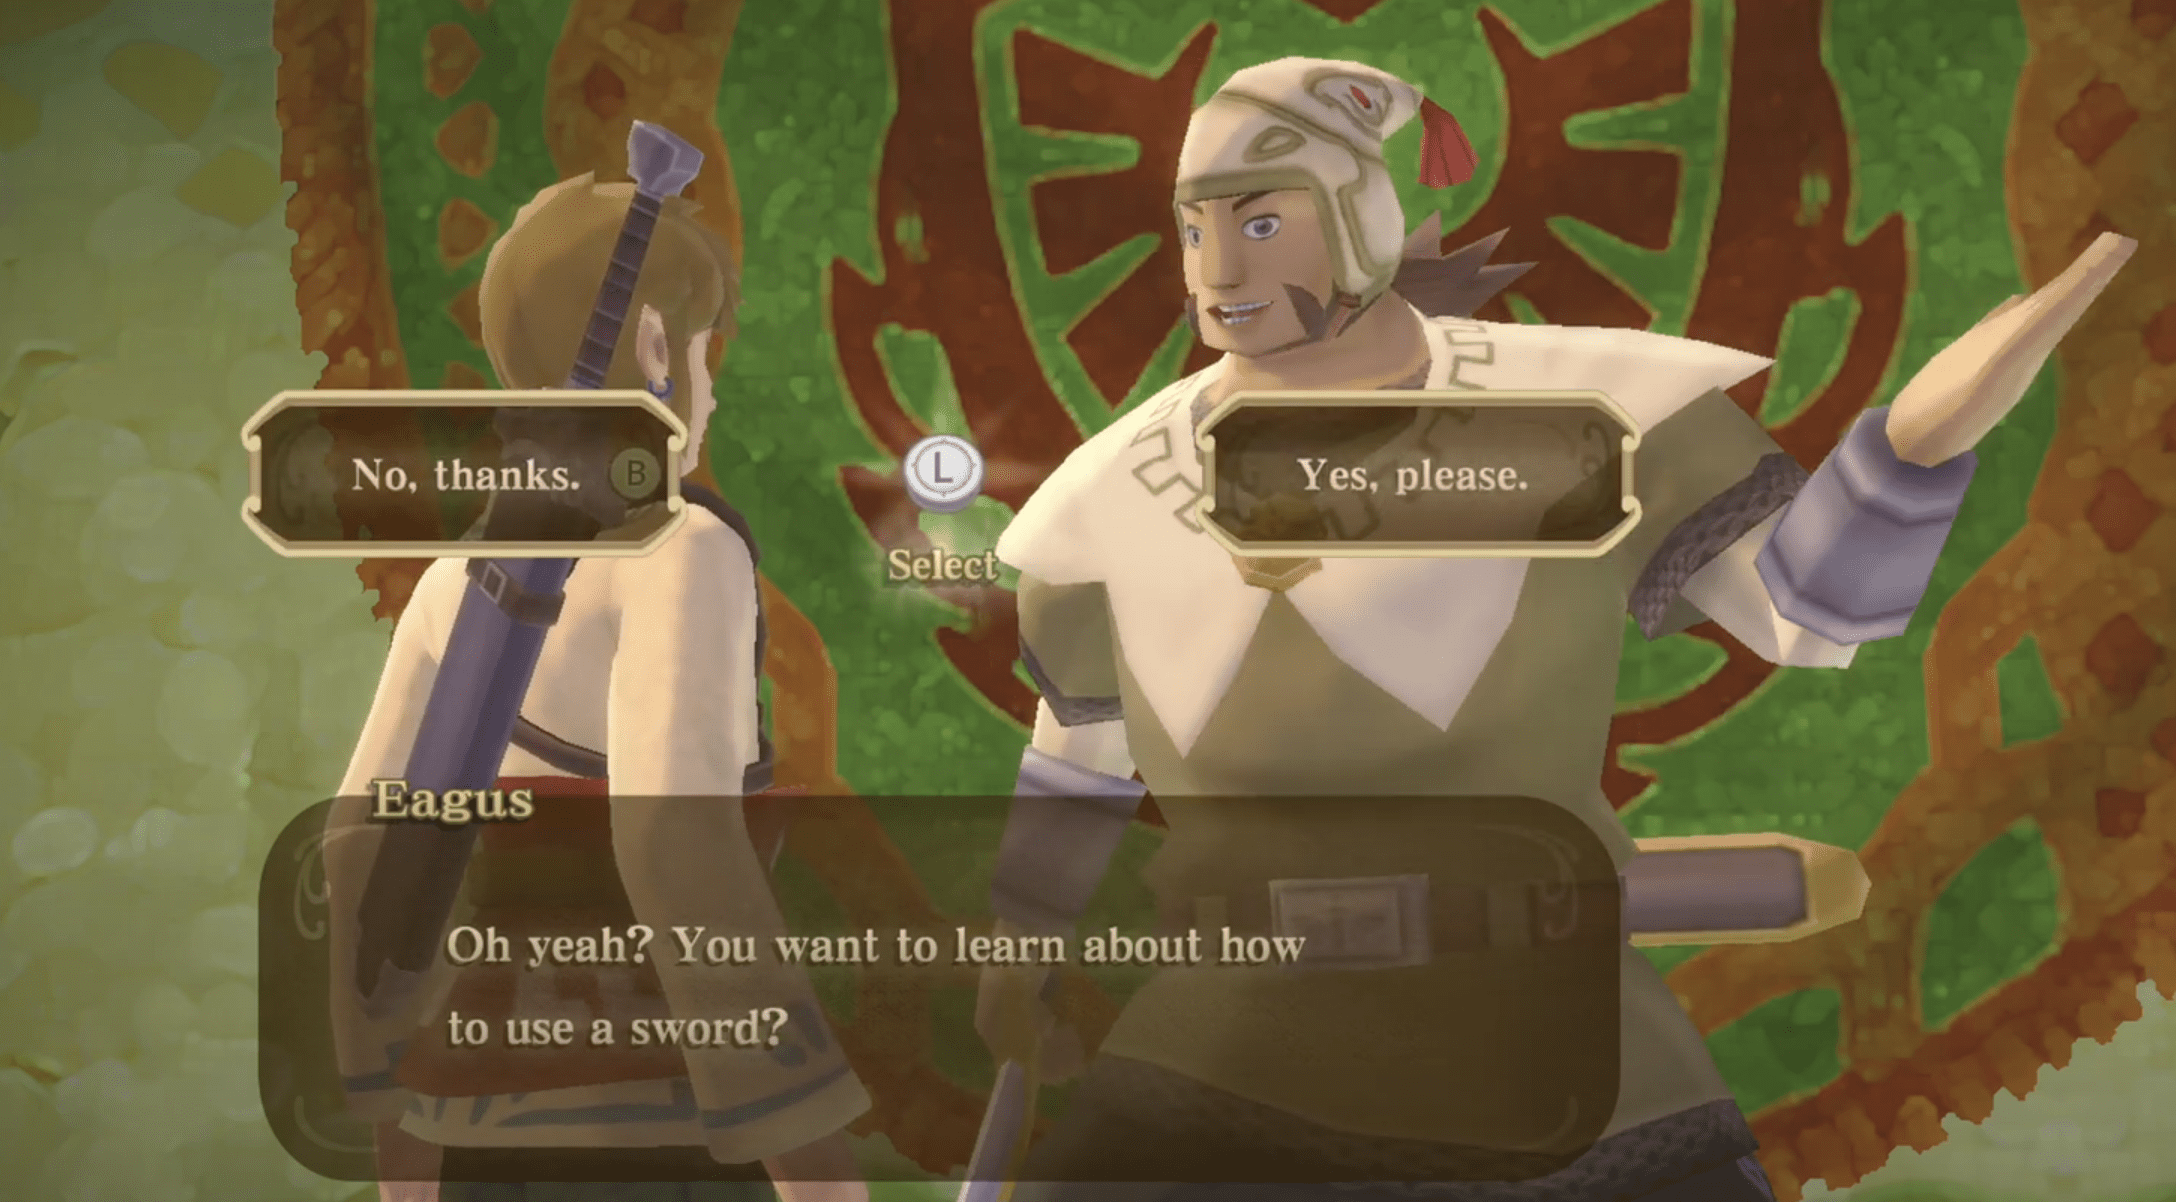 Sword tutorials are optional in Skyward Sword HD, with the option to say no to training